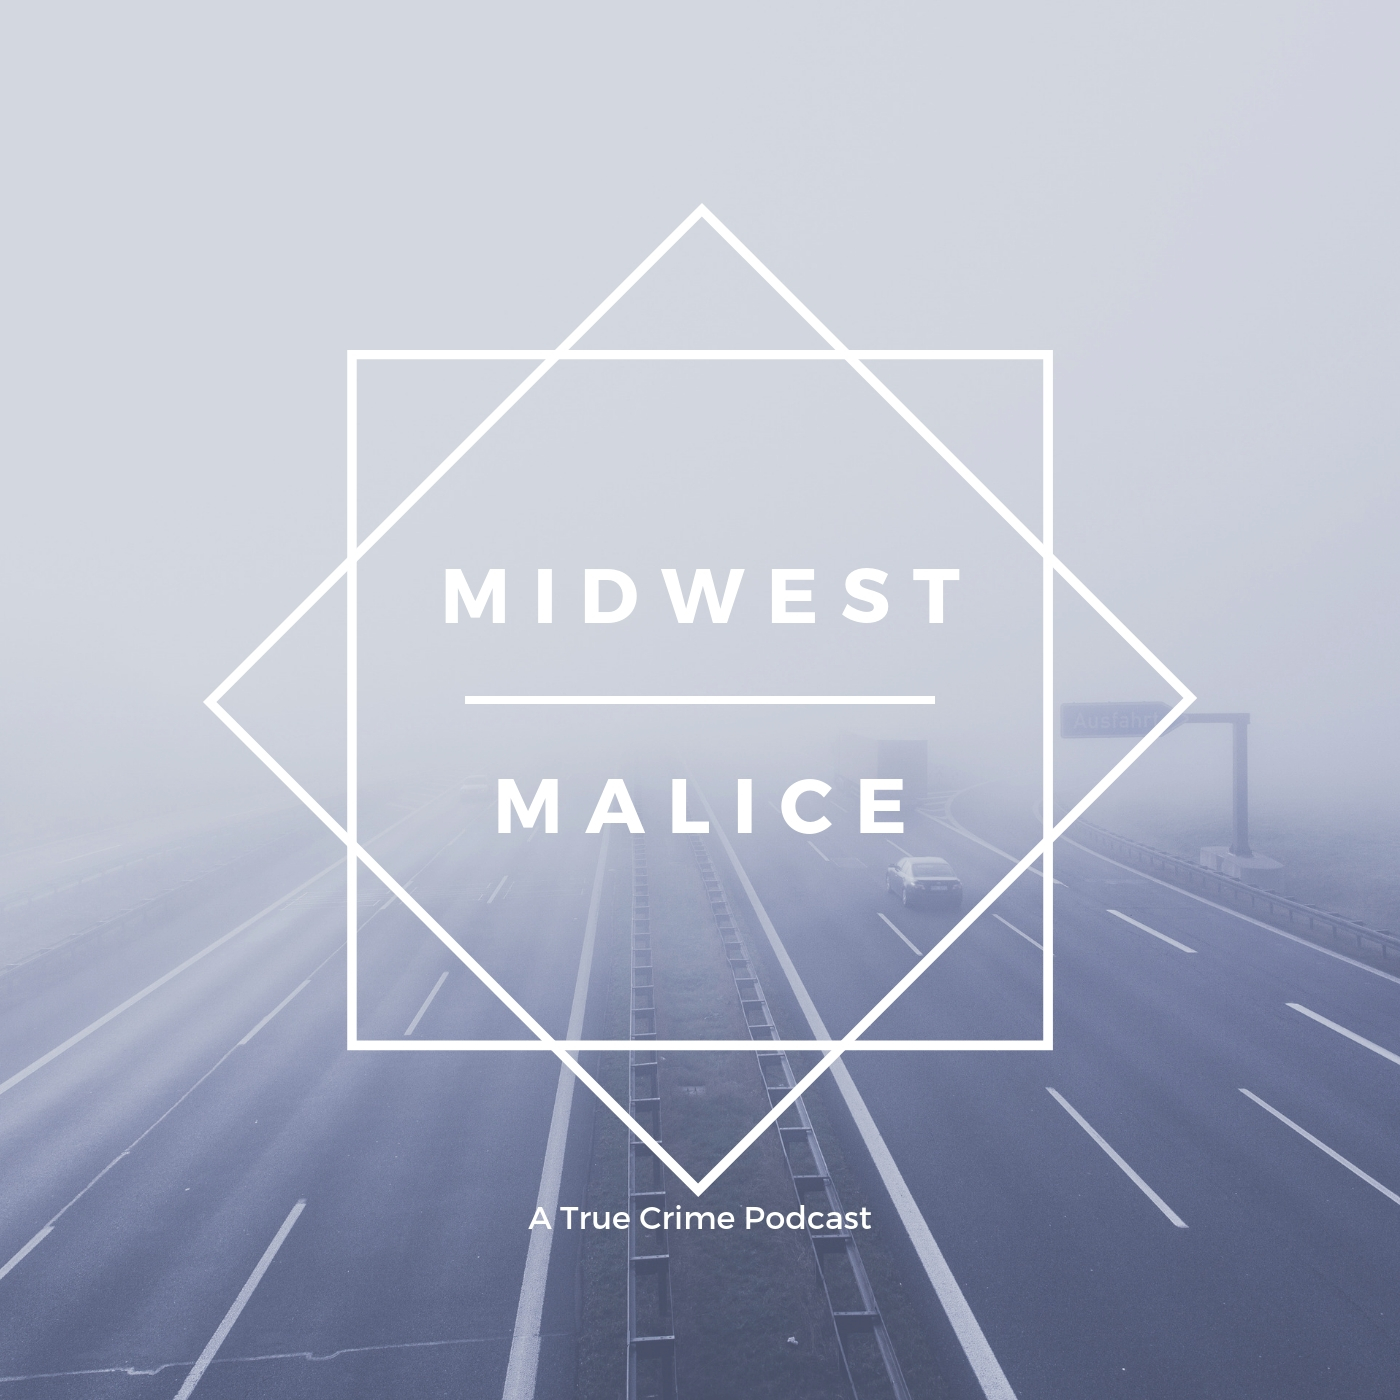 midwestmalice